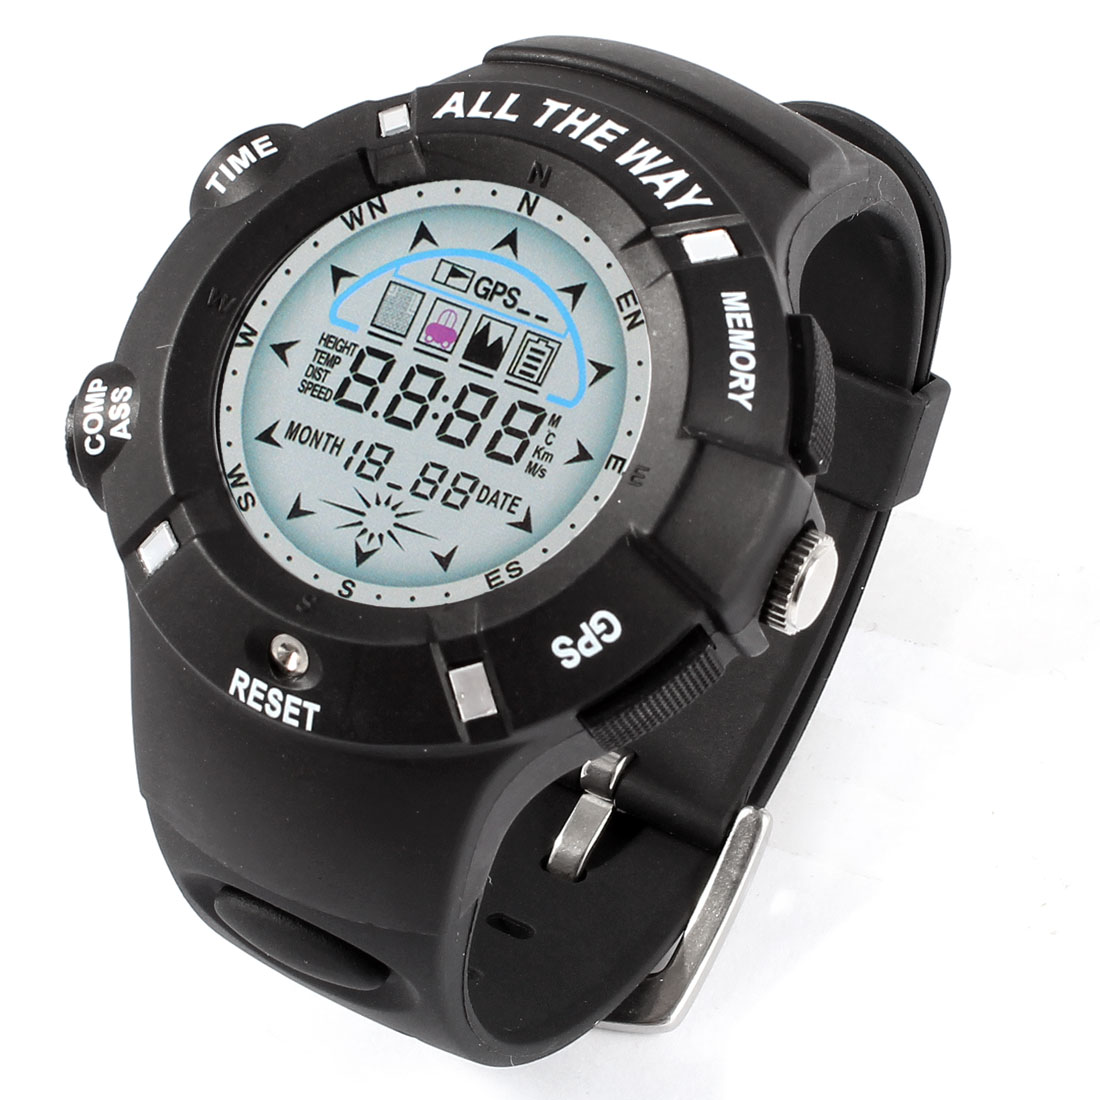 All The Way GPS Tracker Integrated Version Water-resistant Sport Watch Black